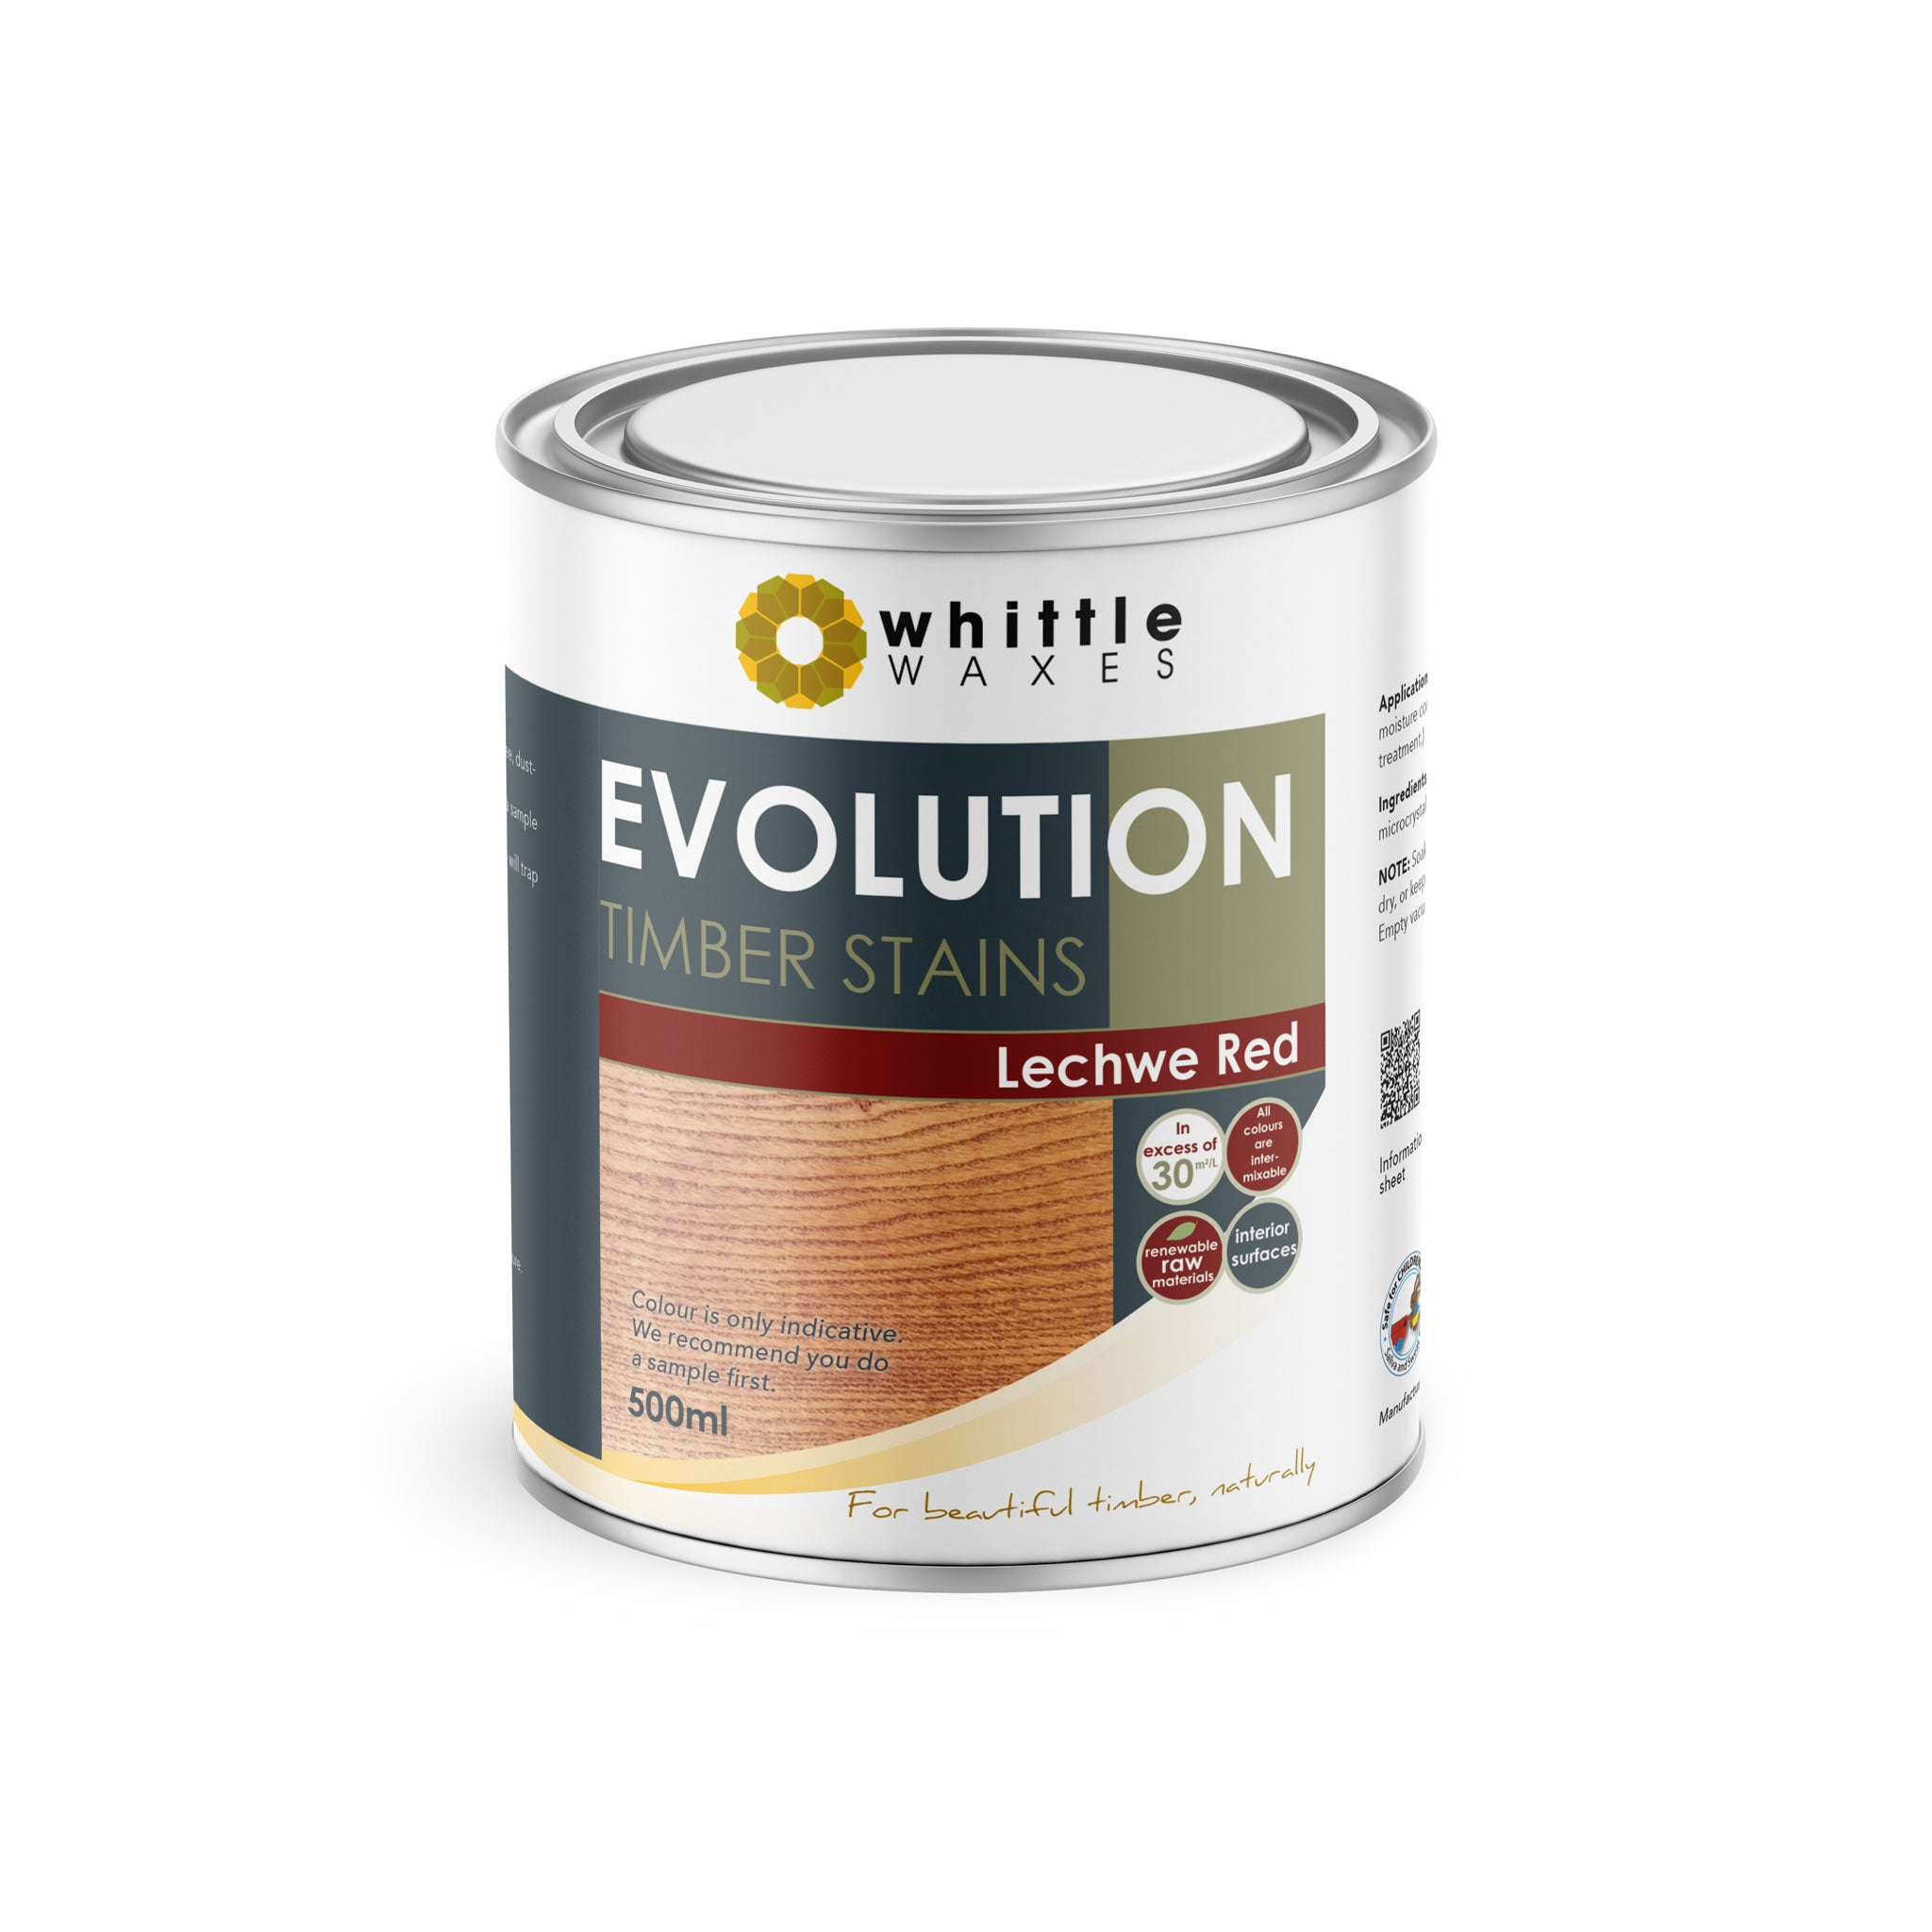 Whittle Waxes Evolution Colours (Lechwe Red) - quality timber stain - 500ml